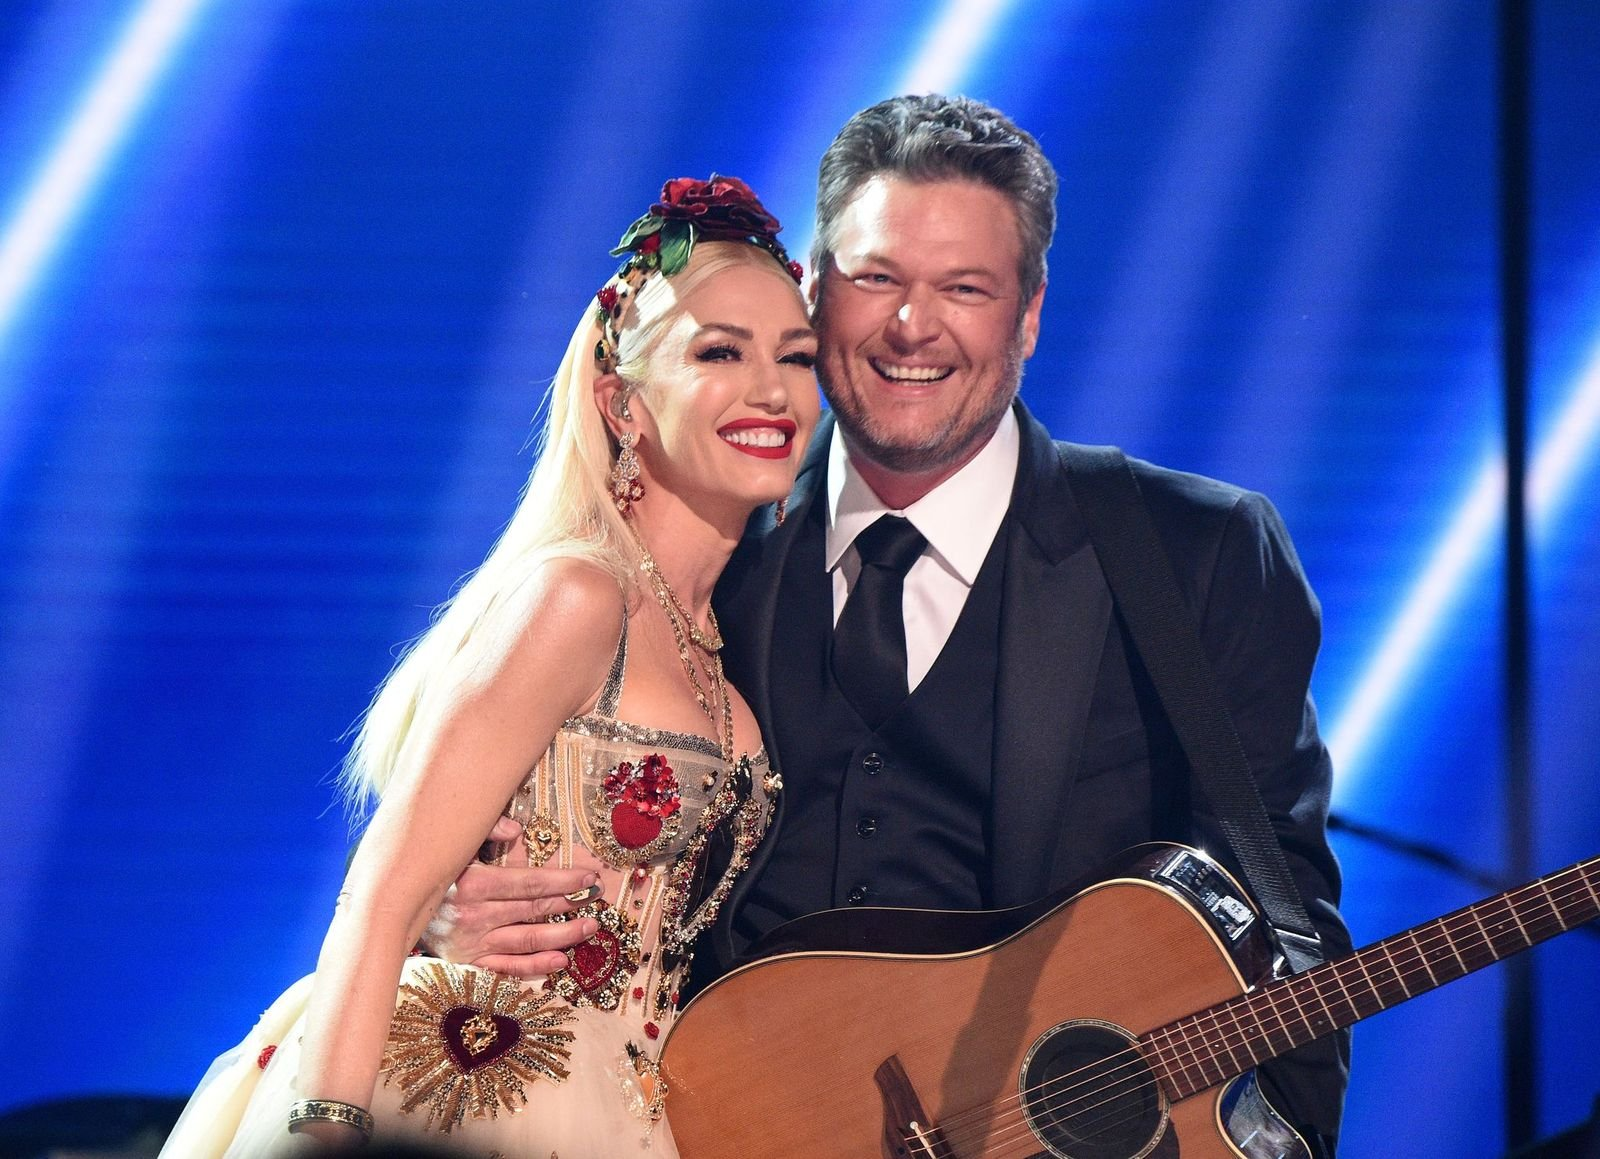 Gwen Stefani and Blake Shelton during the 62nd Annual Grammy Awards on January 26, 2020 | Photo: Getty Images